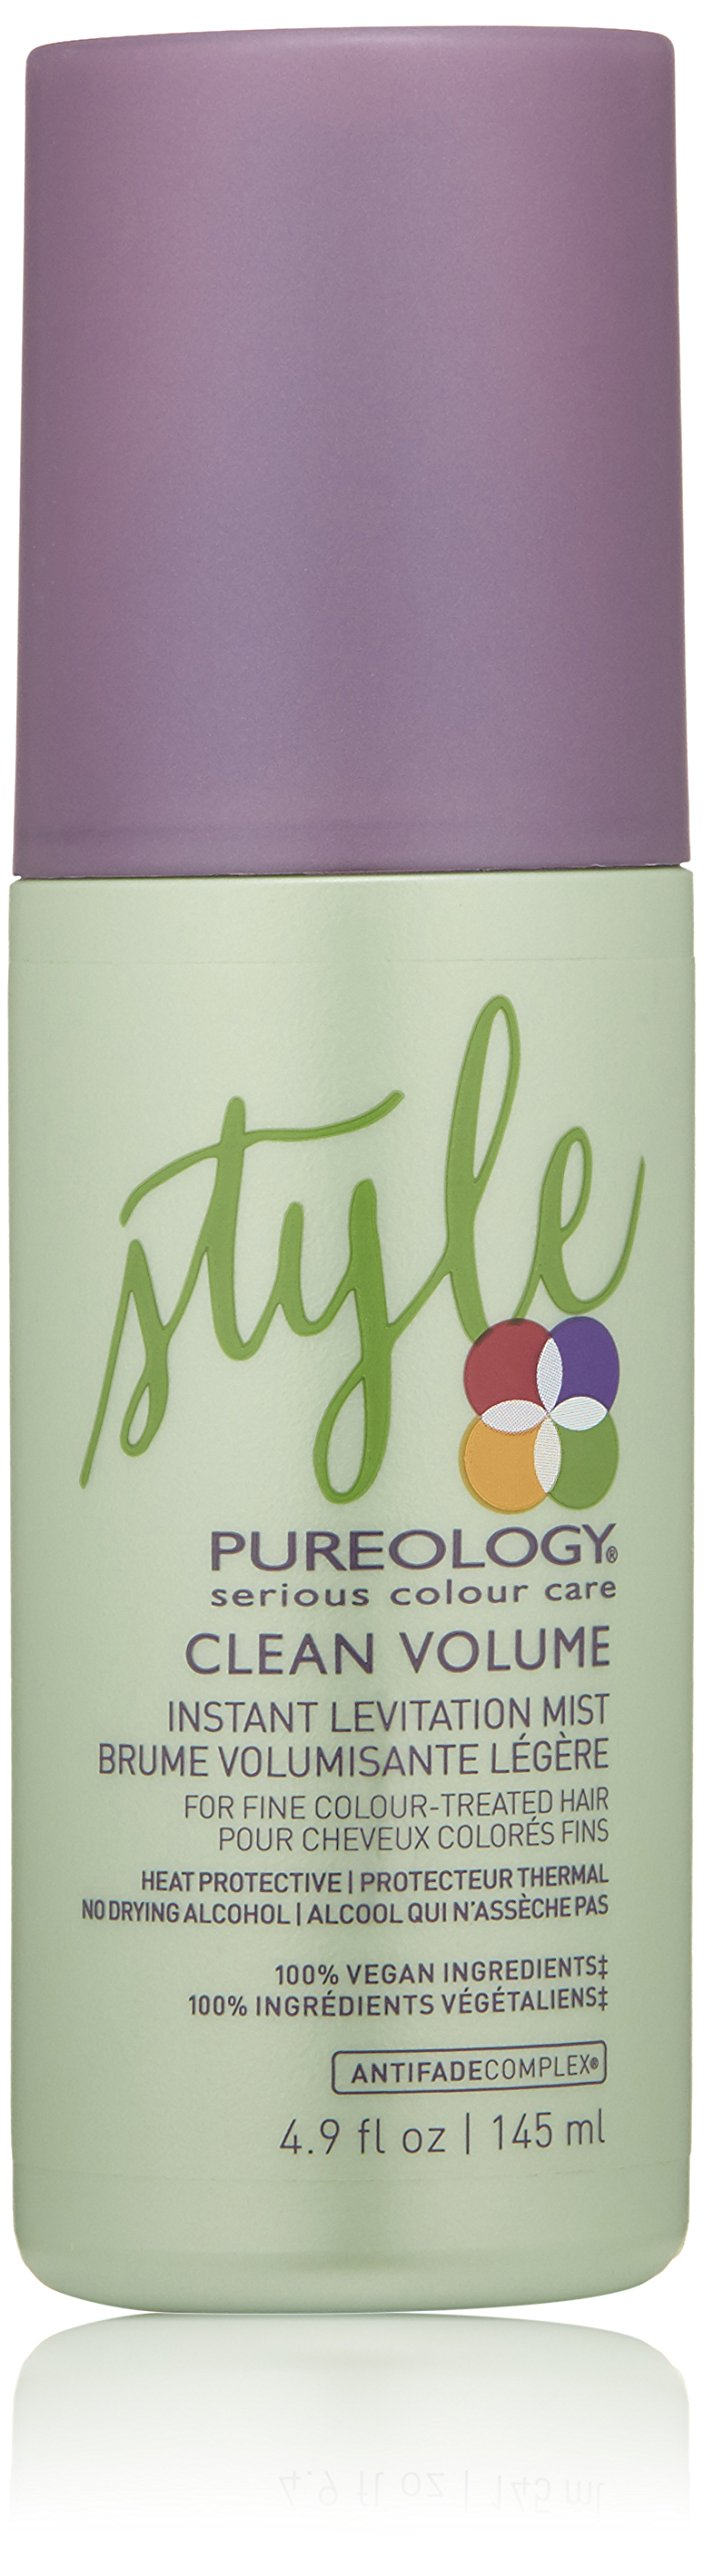 Pureology Clean Volume Instant Levitation Mist, 4.9 Fl Oz